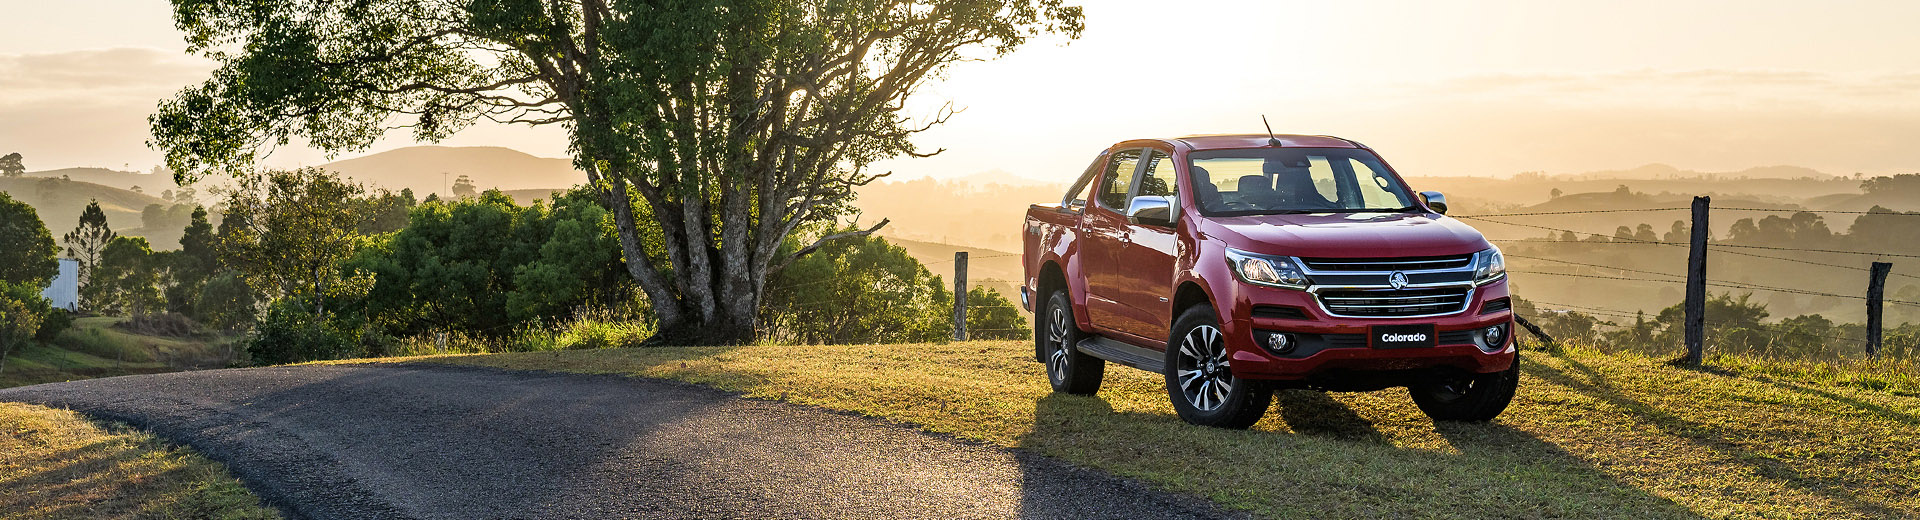 Book a Holden Test Drive Image